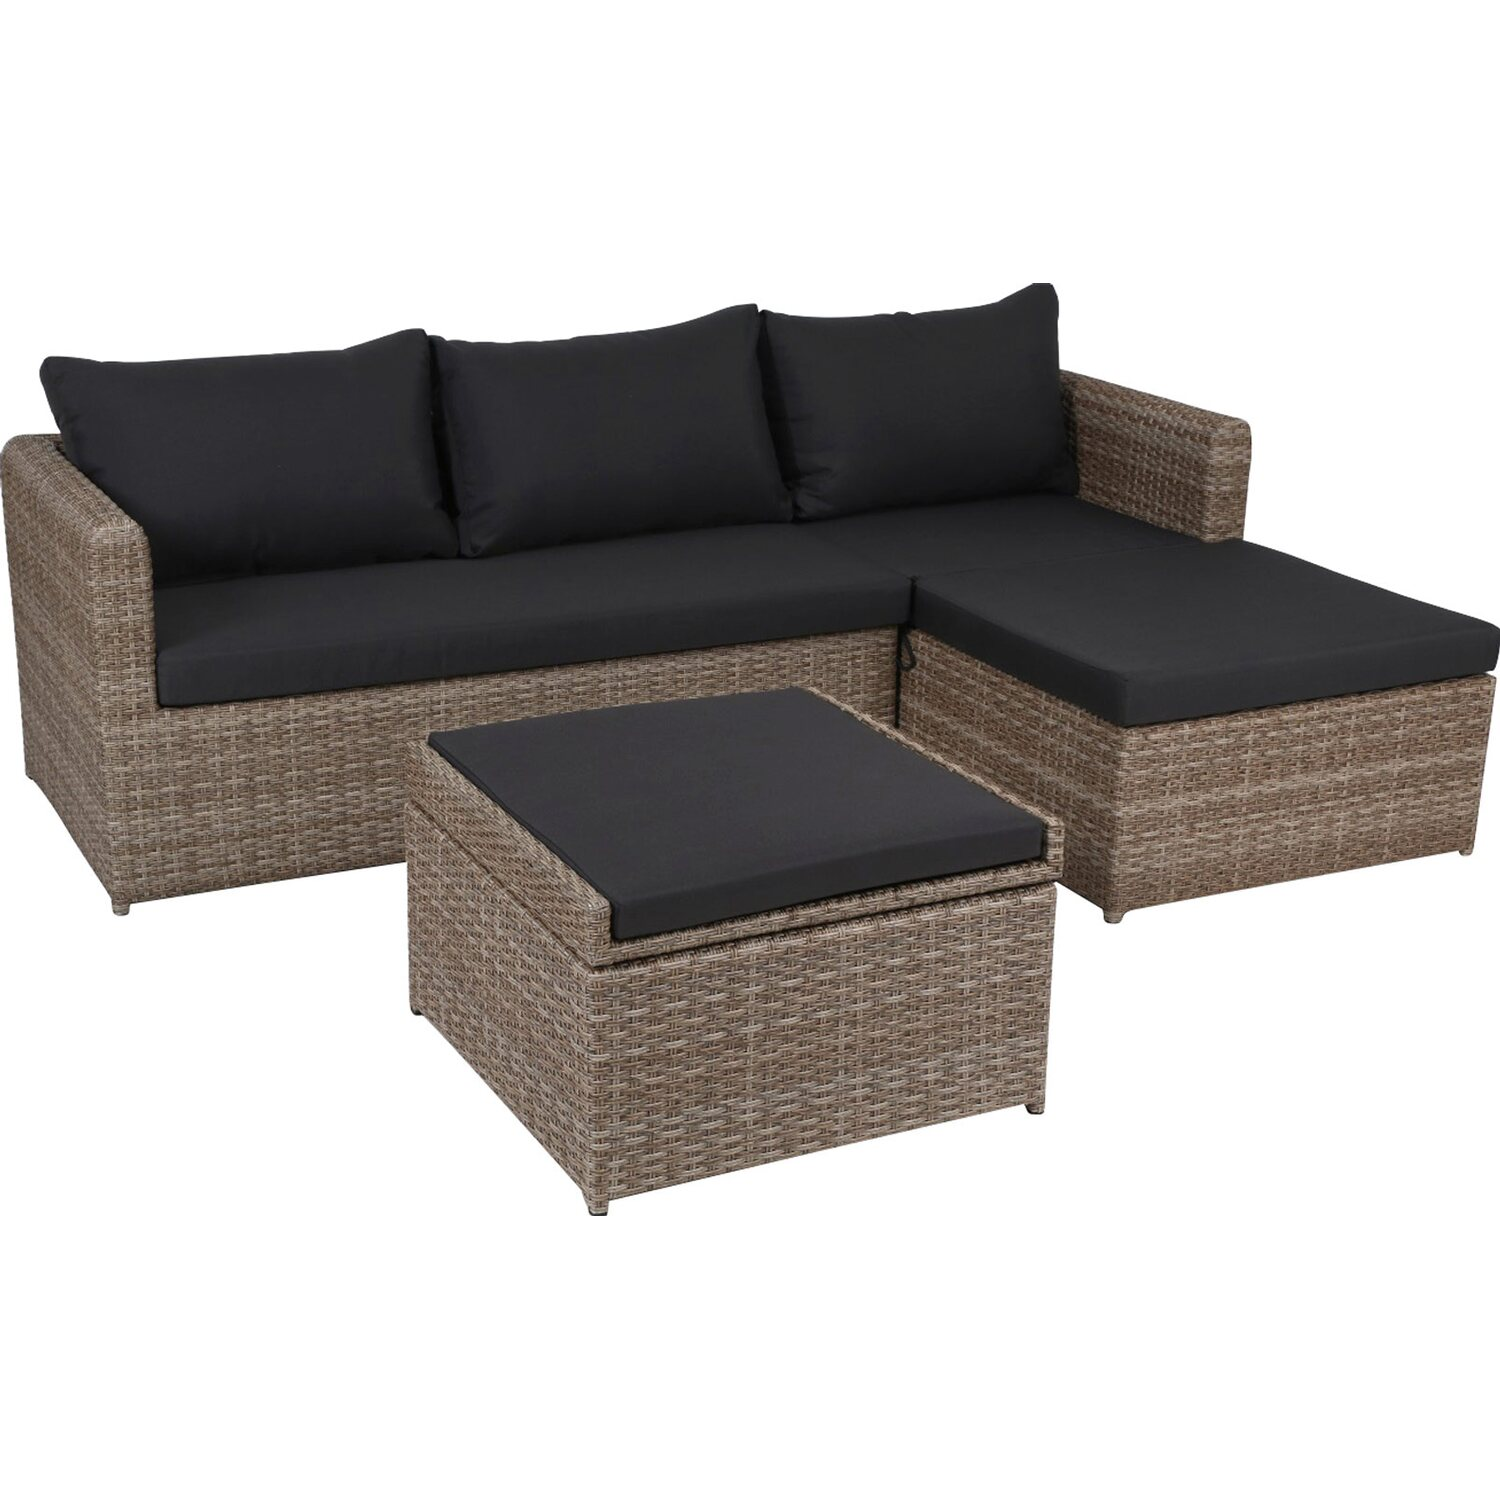 lounge gartenm bel online kaufen bei obi. Black Bedroom Furniture Sets. Home Design Ideas